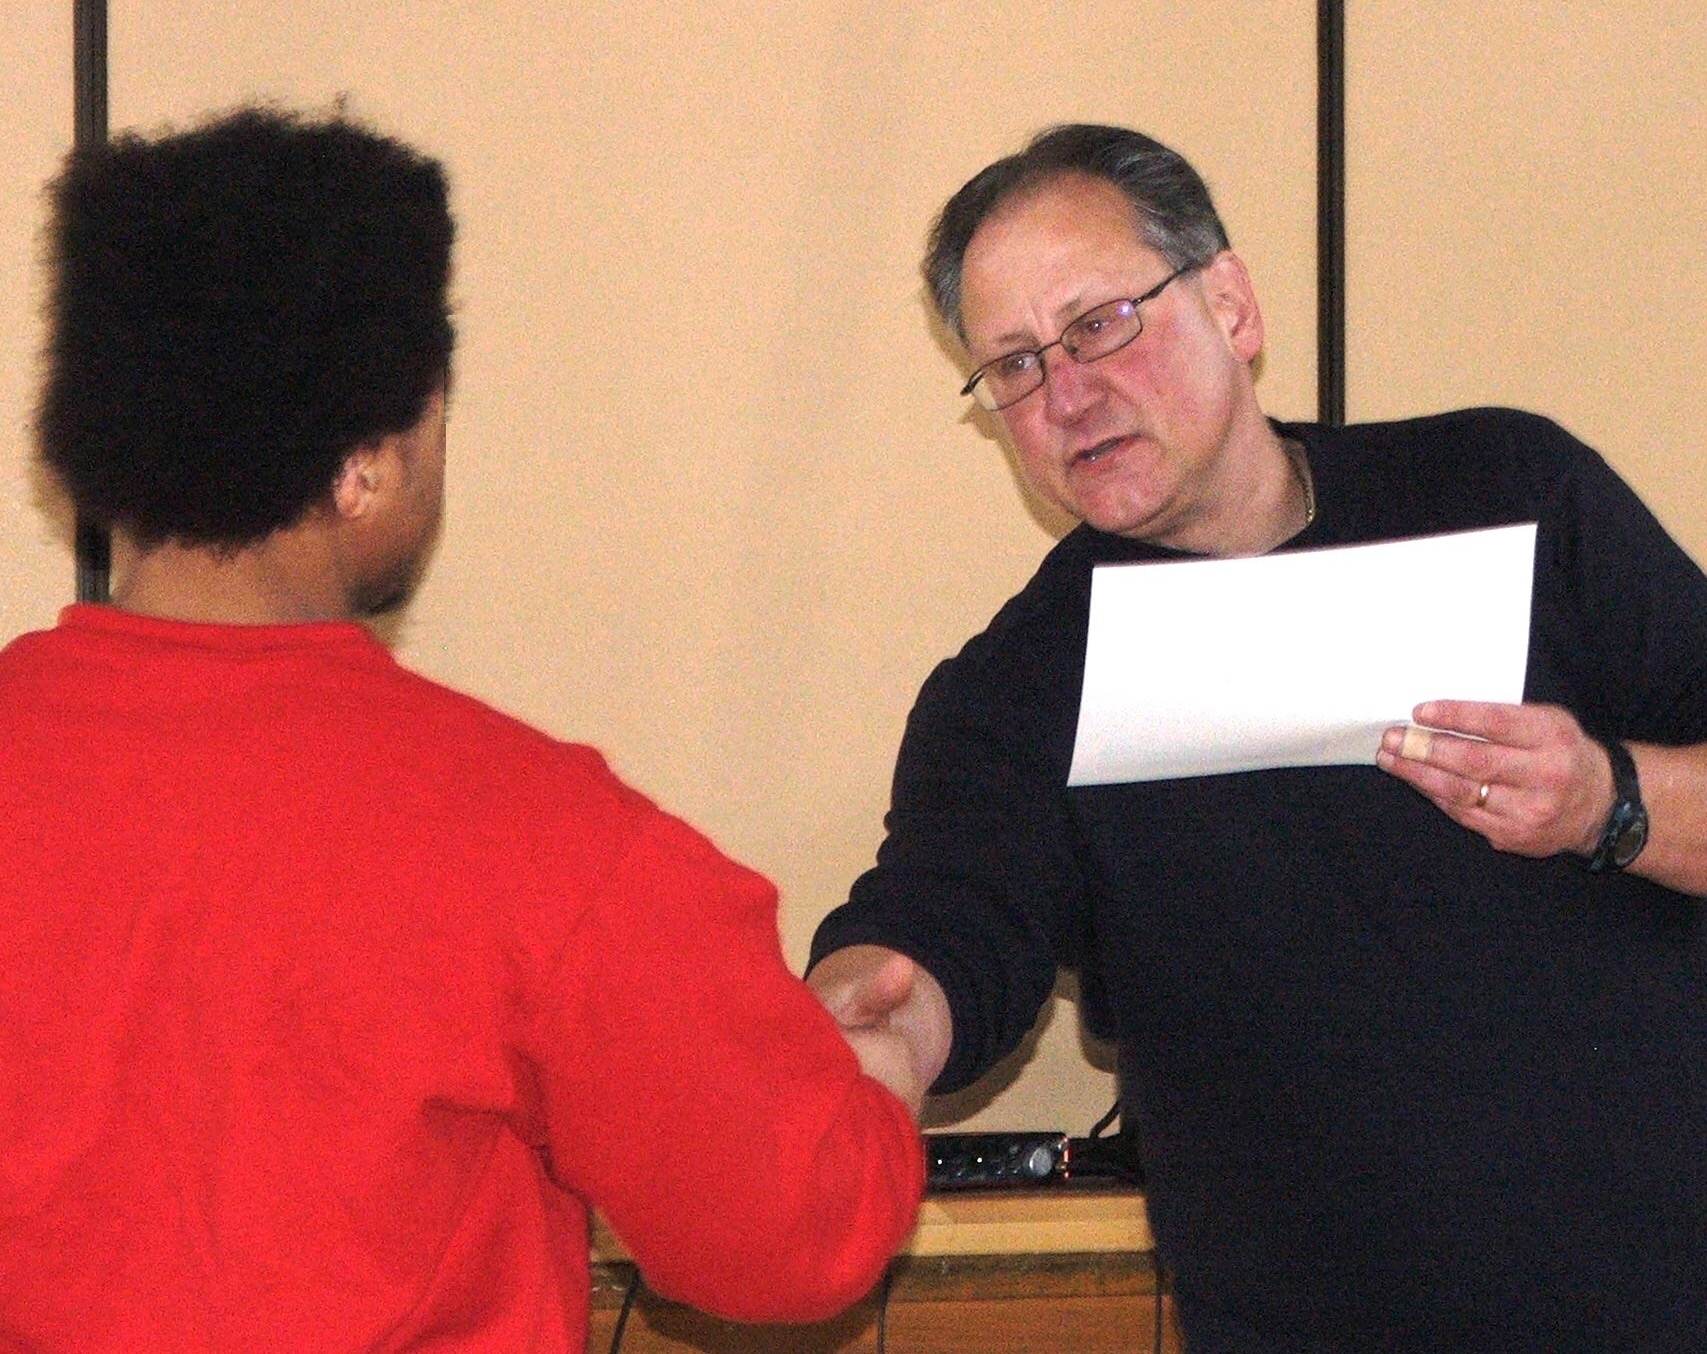 A staff member presents a diploma to a youth and shakes his hand